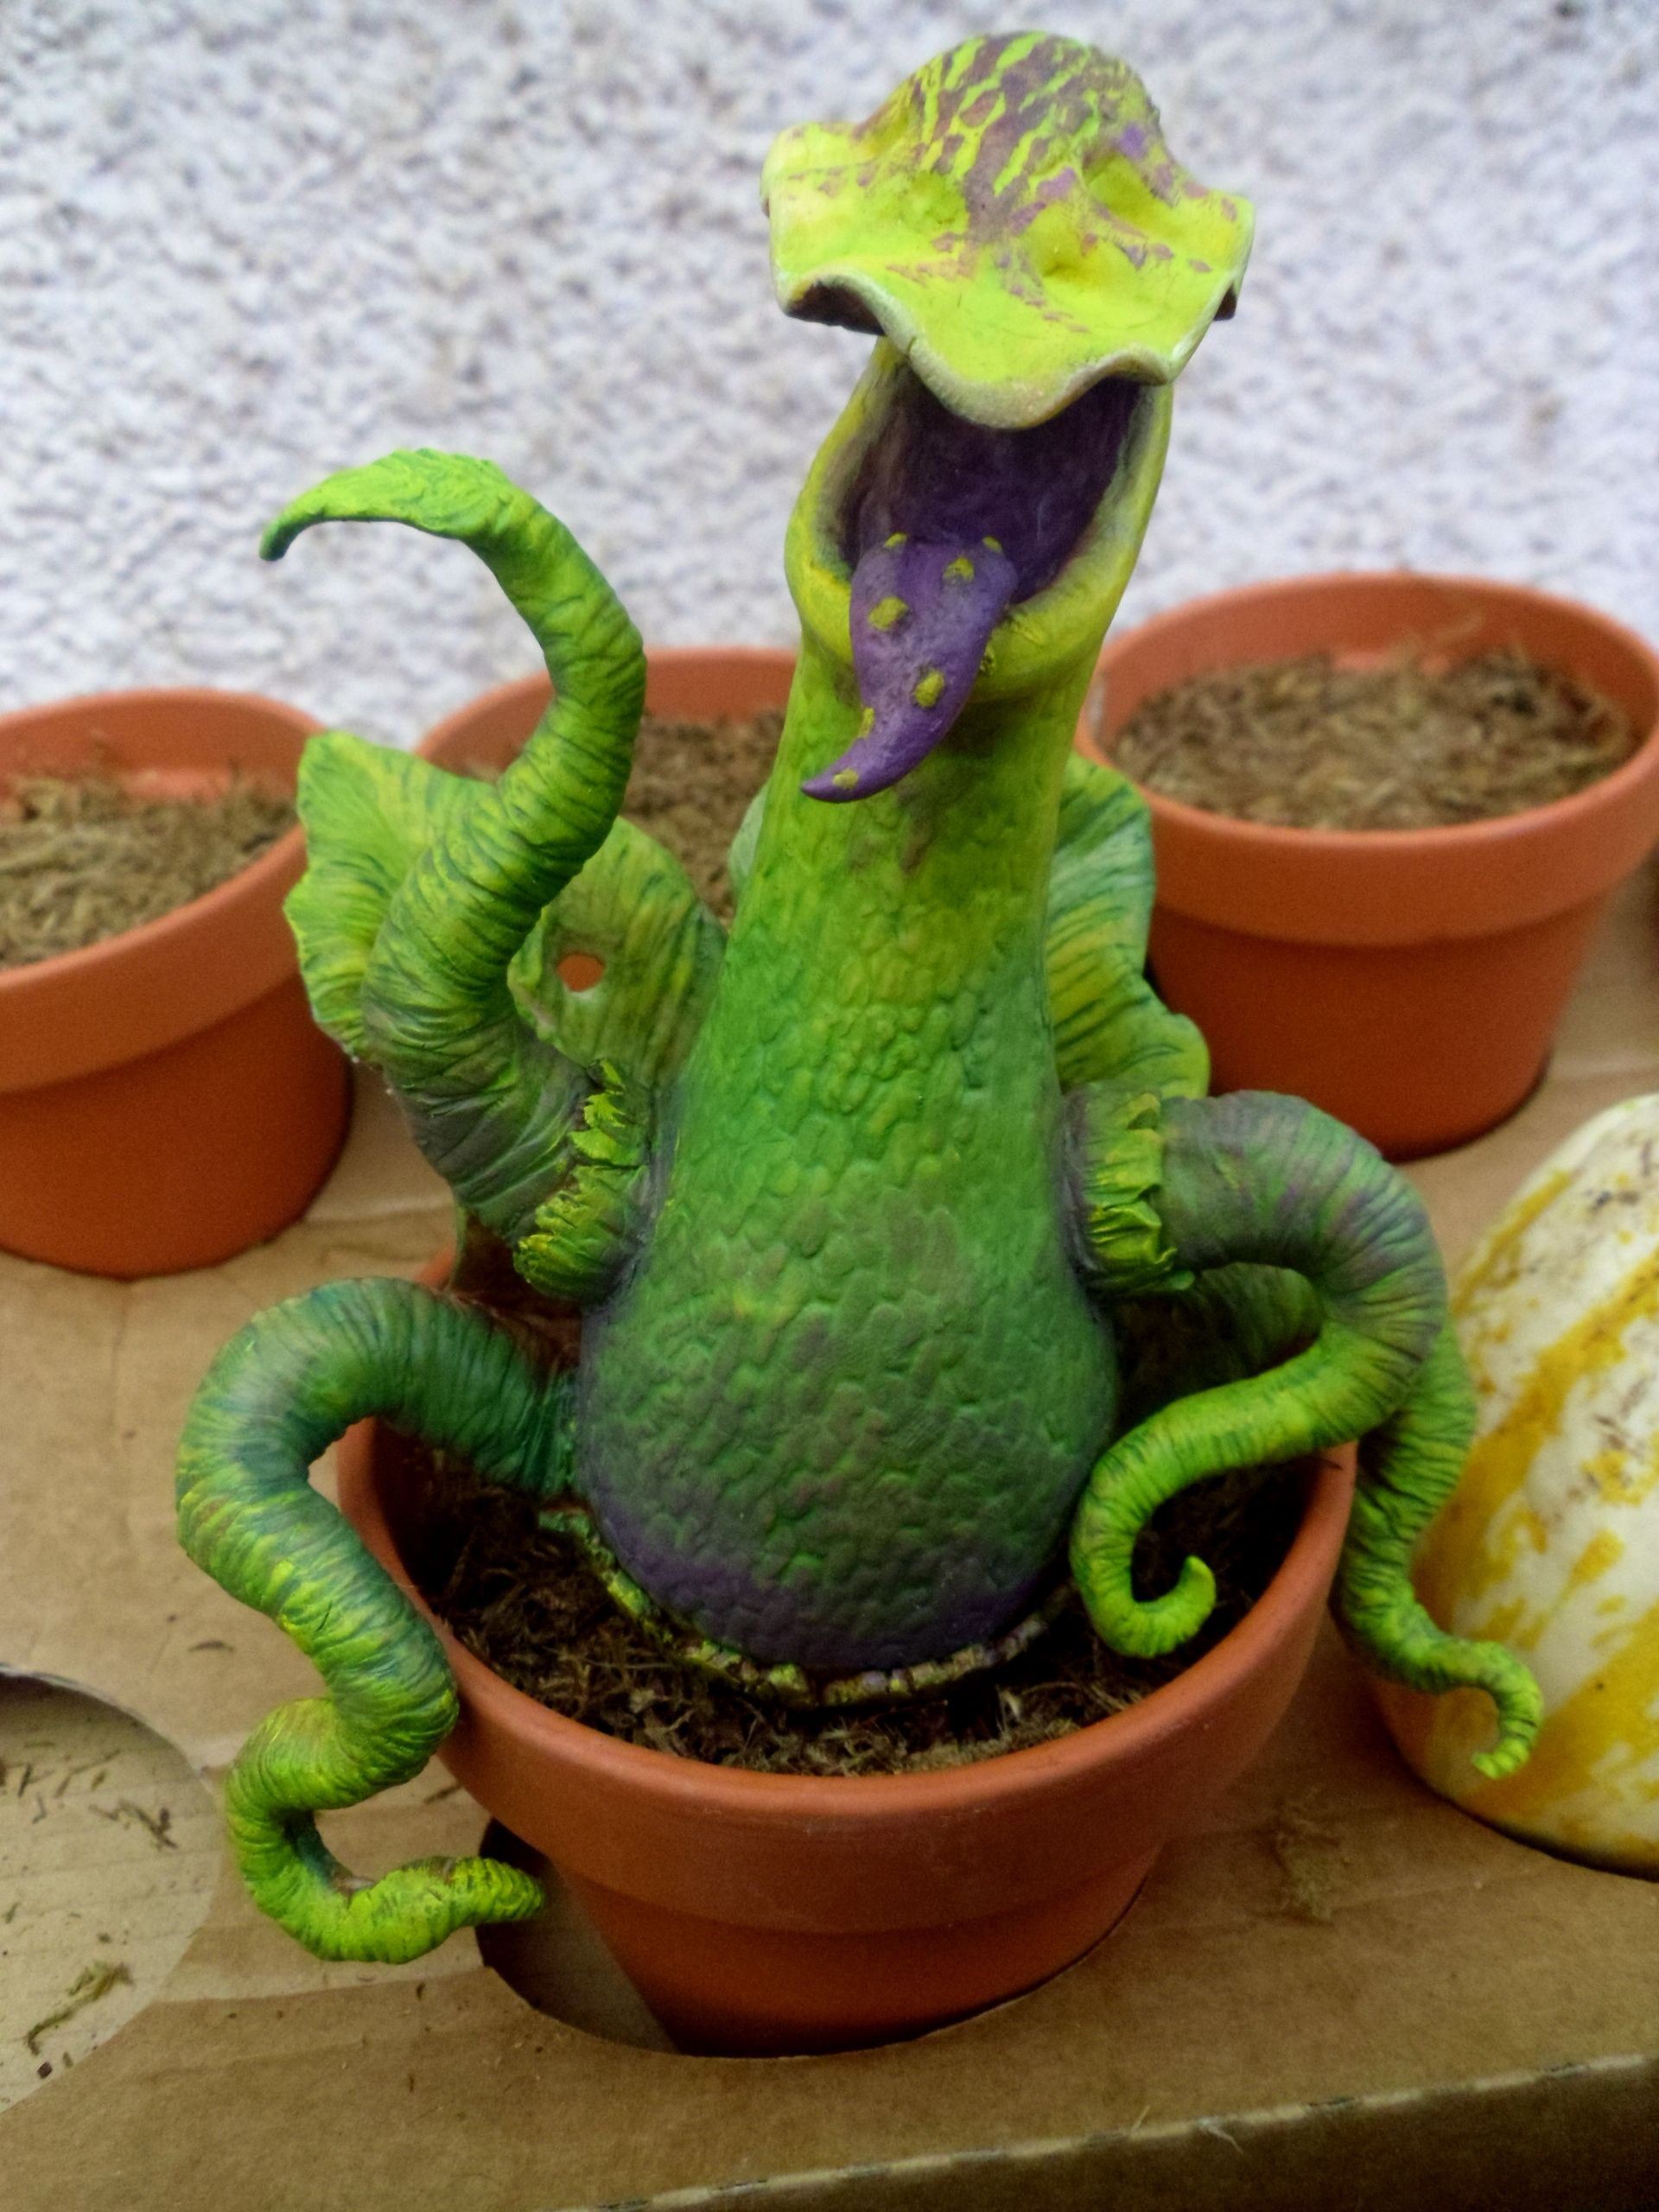 weird growing dude Man eating plant, Eating plant